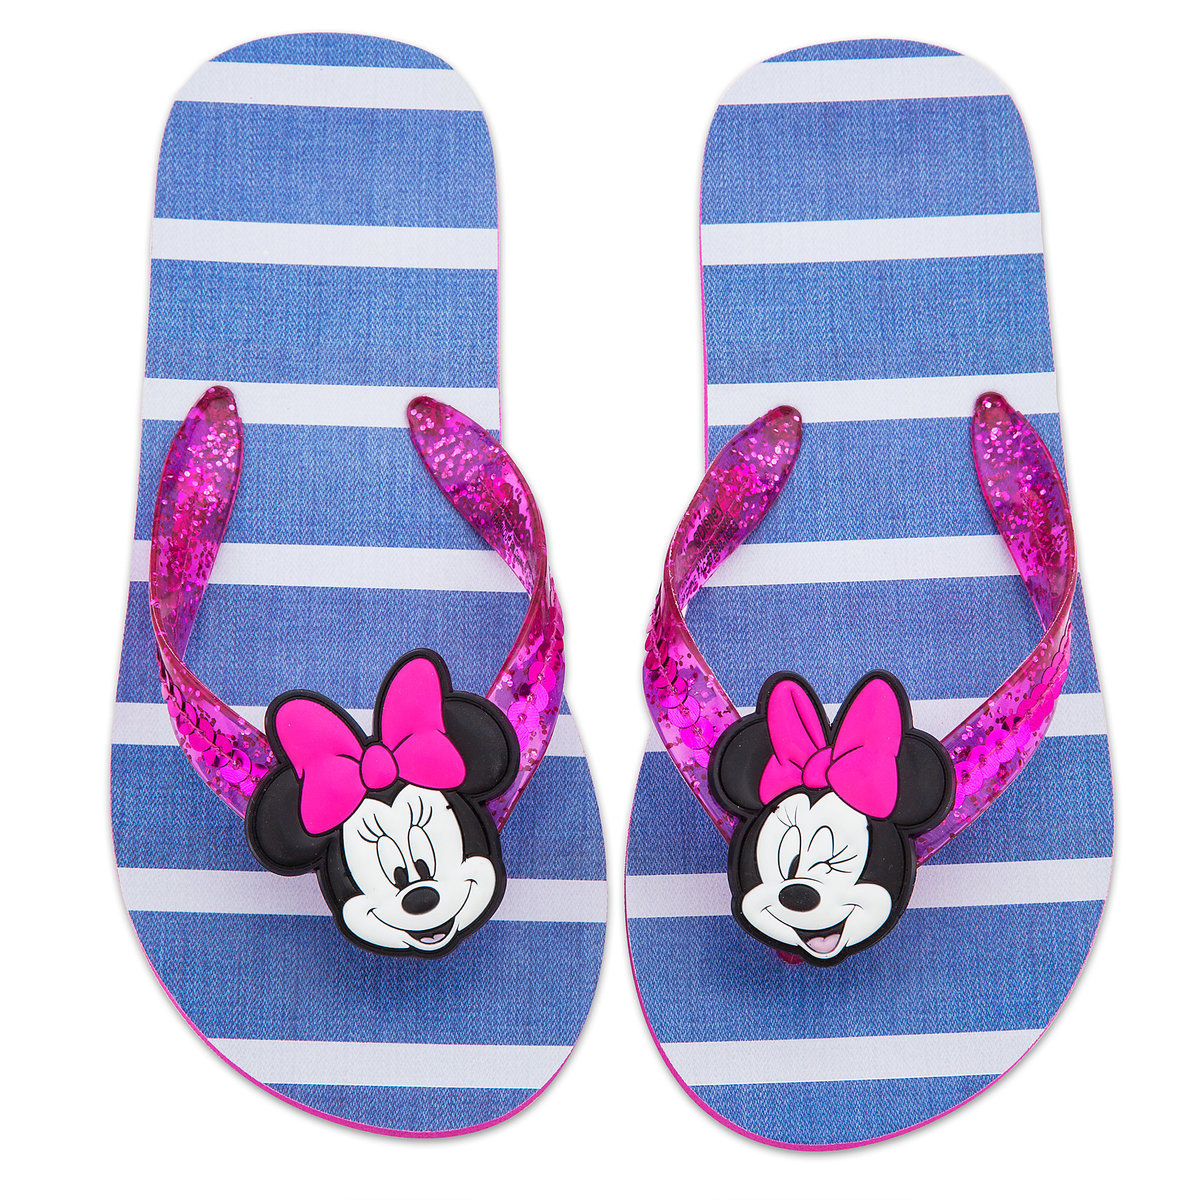 Product Image of Minnie Mouse Flip Flops for Kids # 2